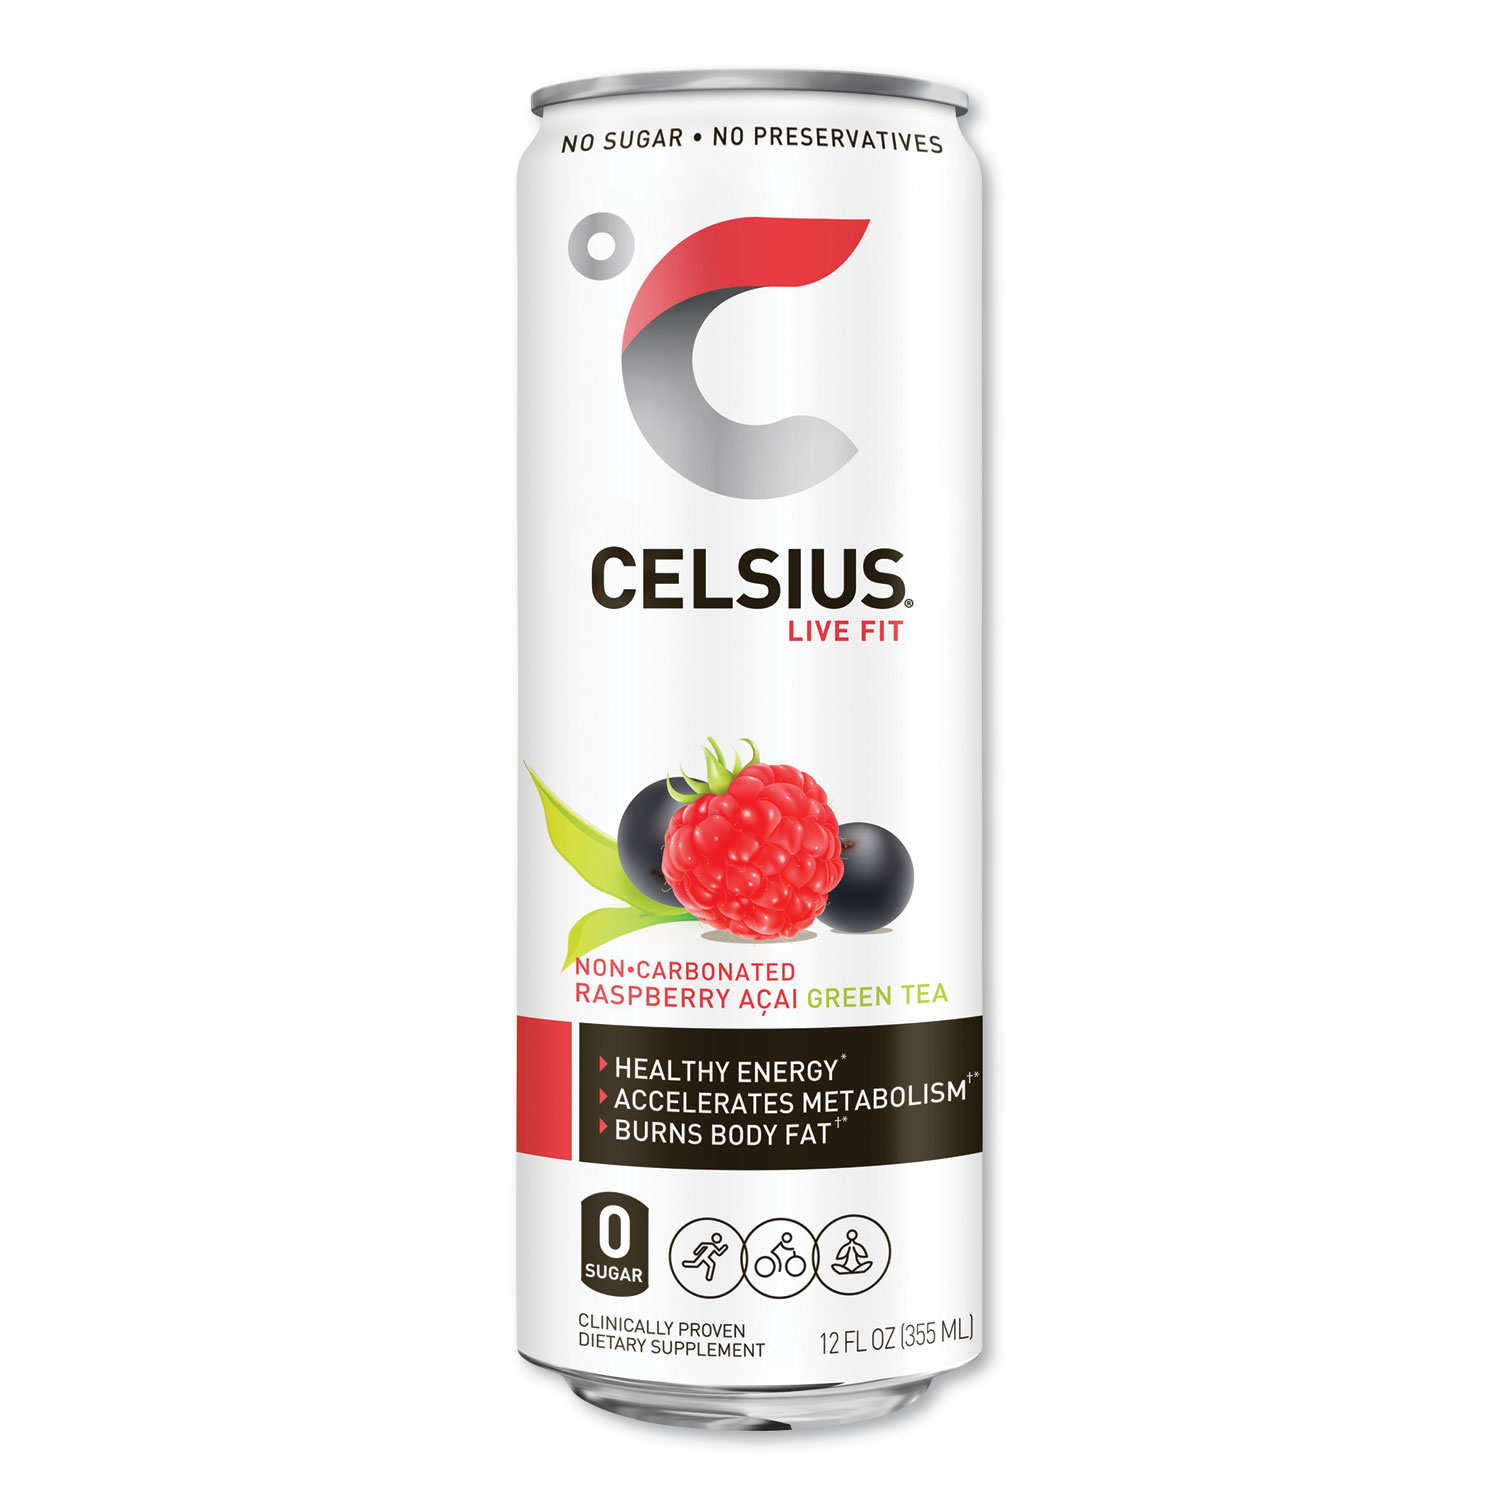 Celsius® Live Fit Fitness Drink, Raspberry Acai Green Tea, 12 oz Can, 12/Carton